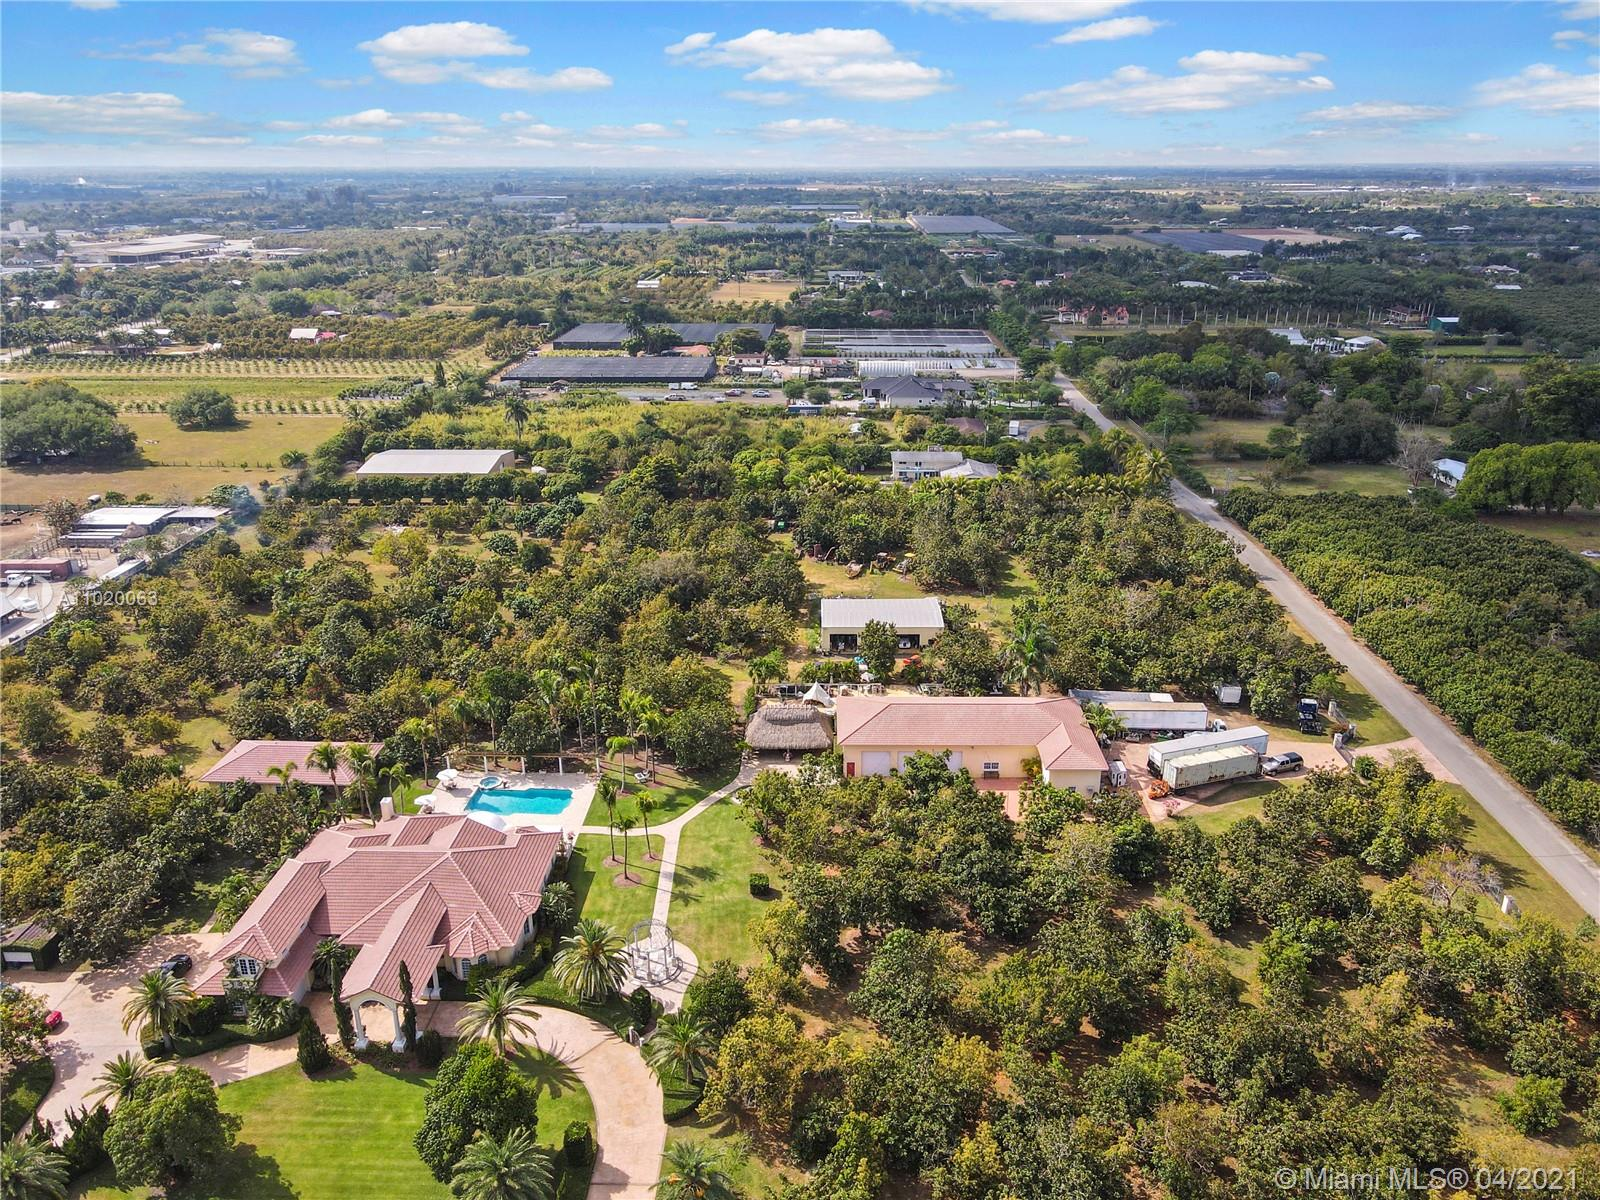 """VIA BELLA ( A-BEAUTIFUL PATHWAY) IS A LUXURY 10 ACRE ESTATE IN """"THE HEART OF REDLAND"""".THE NAME REFLECTS THE PROPERTY. SHES A  6/5, WITH AN AIR OF FRENCH COUNTRY.  A LARGE VERANDA OVERLOOKS THIS RESORT LEVEL POOL AND PATIO, 1 OF 2 GARAGES IS A ATT 3 CAR. THE POOL HOUSE IS A 2/1.5 WITH A 'WIDE  PATIO ALSO OVERLOOKING THE GROUNDS & POOL. THIS IS A VILLAGE, STROLL THE MEANDERING PATHWAYS TO THE 12+ CAR GARAGE WITH OFFICE, TO THE TIKI STYLE PARTY PAVILLION PAST THE FIRE PIT,GAZEBOS,LAWN ART,ETC. THE BACK ACREAGE IS  AN IRRIGATED GROVE INCLUDING MOSTLY MAMAY, AVOCADO, MANGO, ANON, CHITYMOYA & GUANABANA.  CUSTOM BUILT BY HARRIS/SCHRADER WITH POURED CONCRETE CELLS. SHES FULLY FENCED WITH MULTIPLE IRON GATES , LUSHLY LANDSCAPING,SECURITY NO EXPENSE WAS SPARED OR OVERLOOKED. AGRI EXEMPT"""